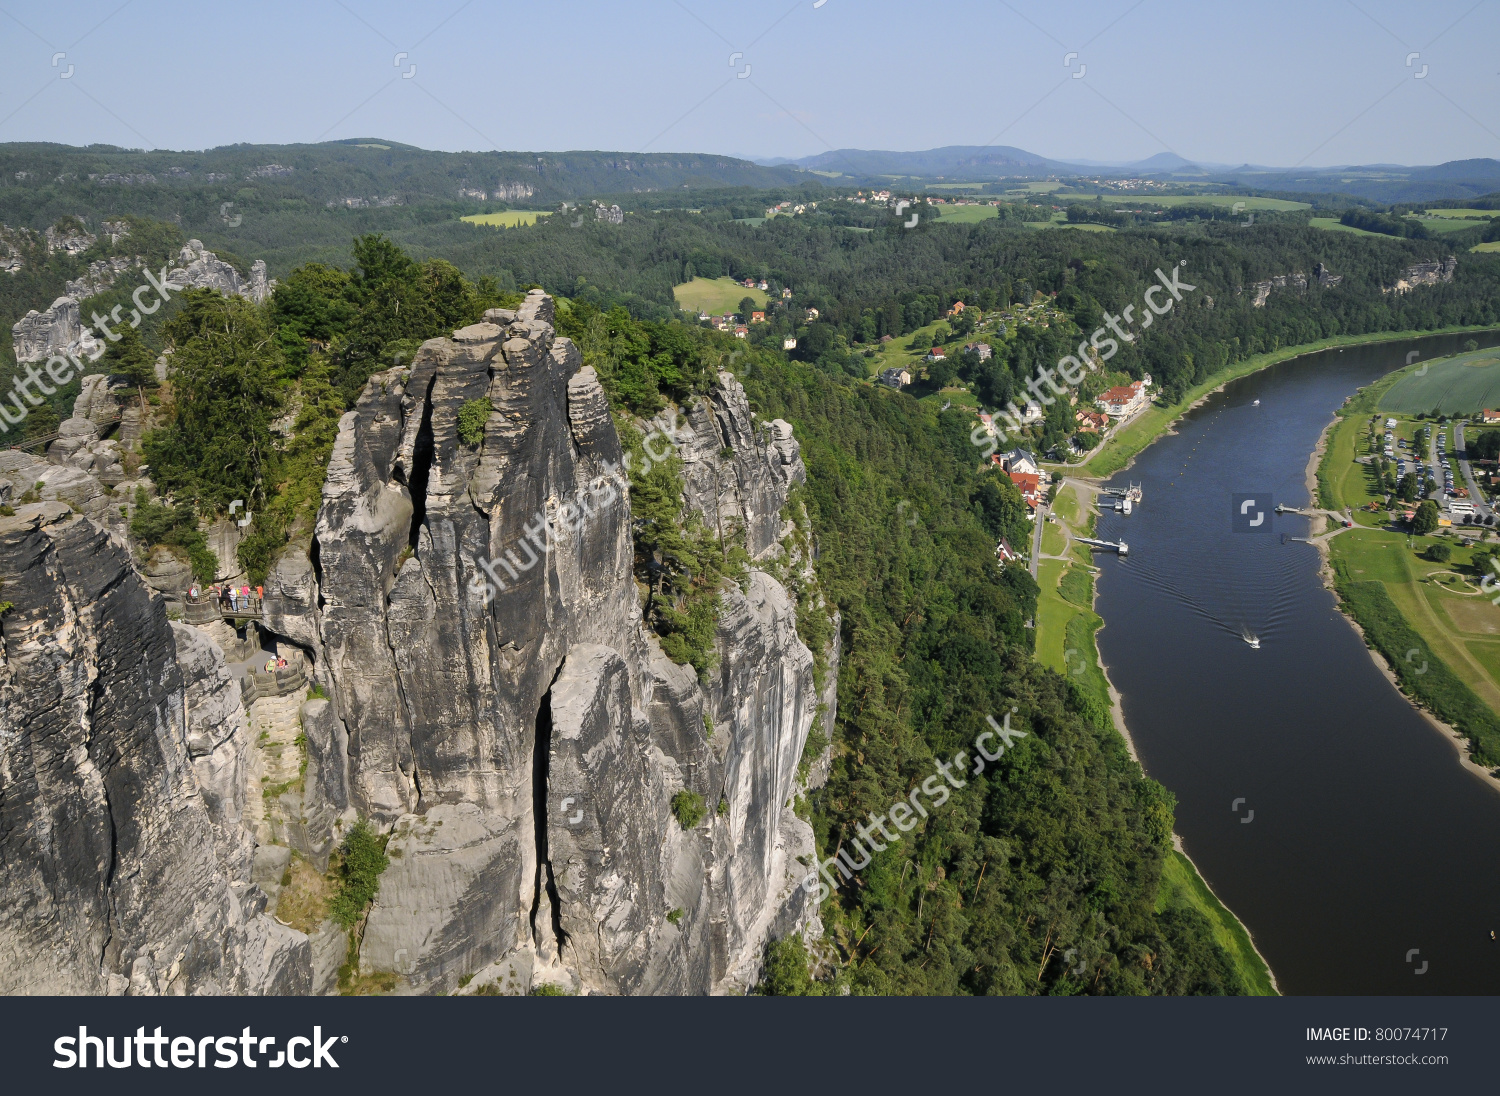 Elbe Sandstone Mountains clipart #19, Download drawings